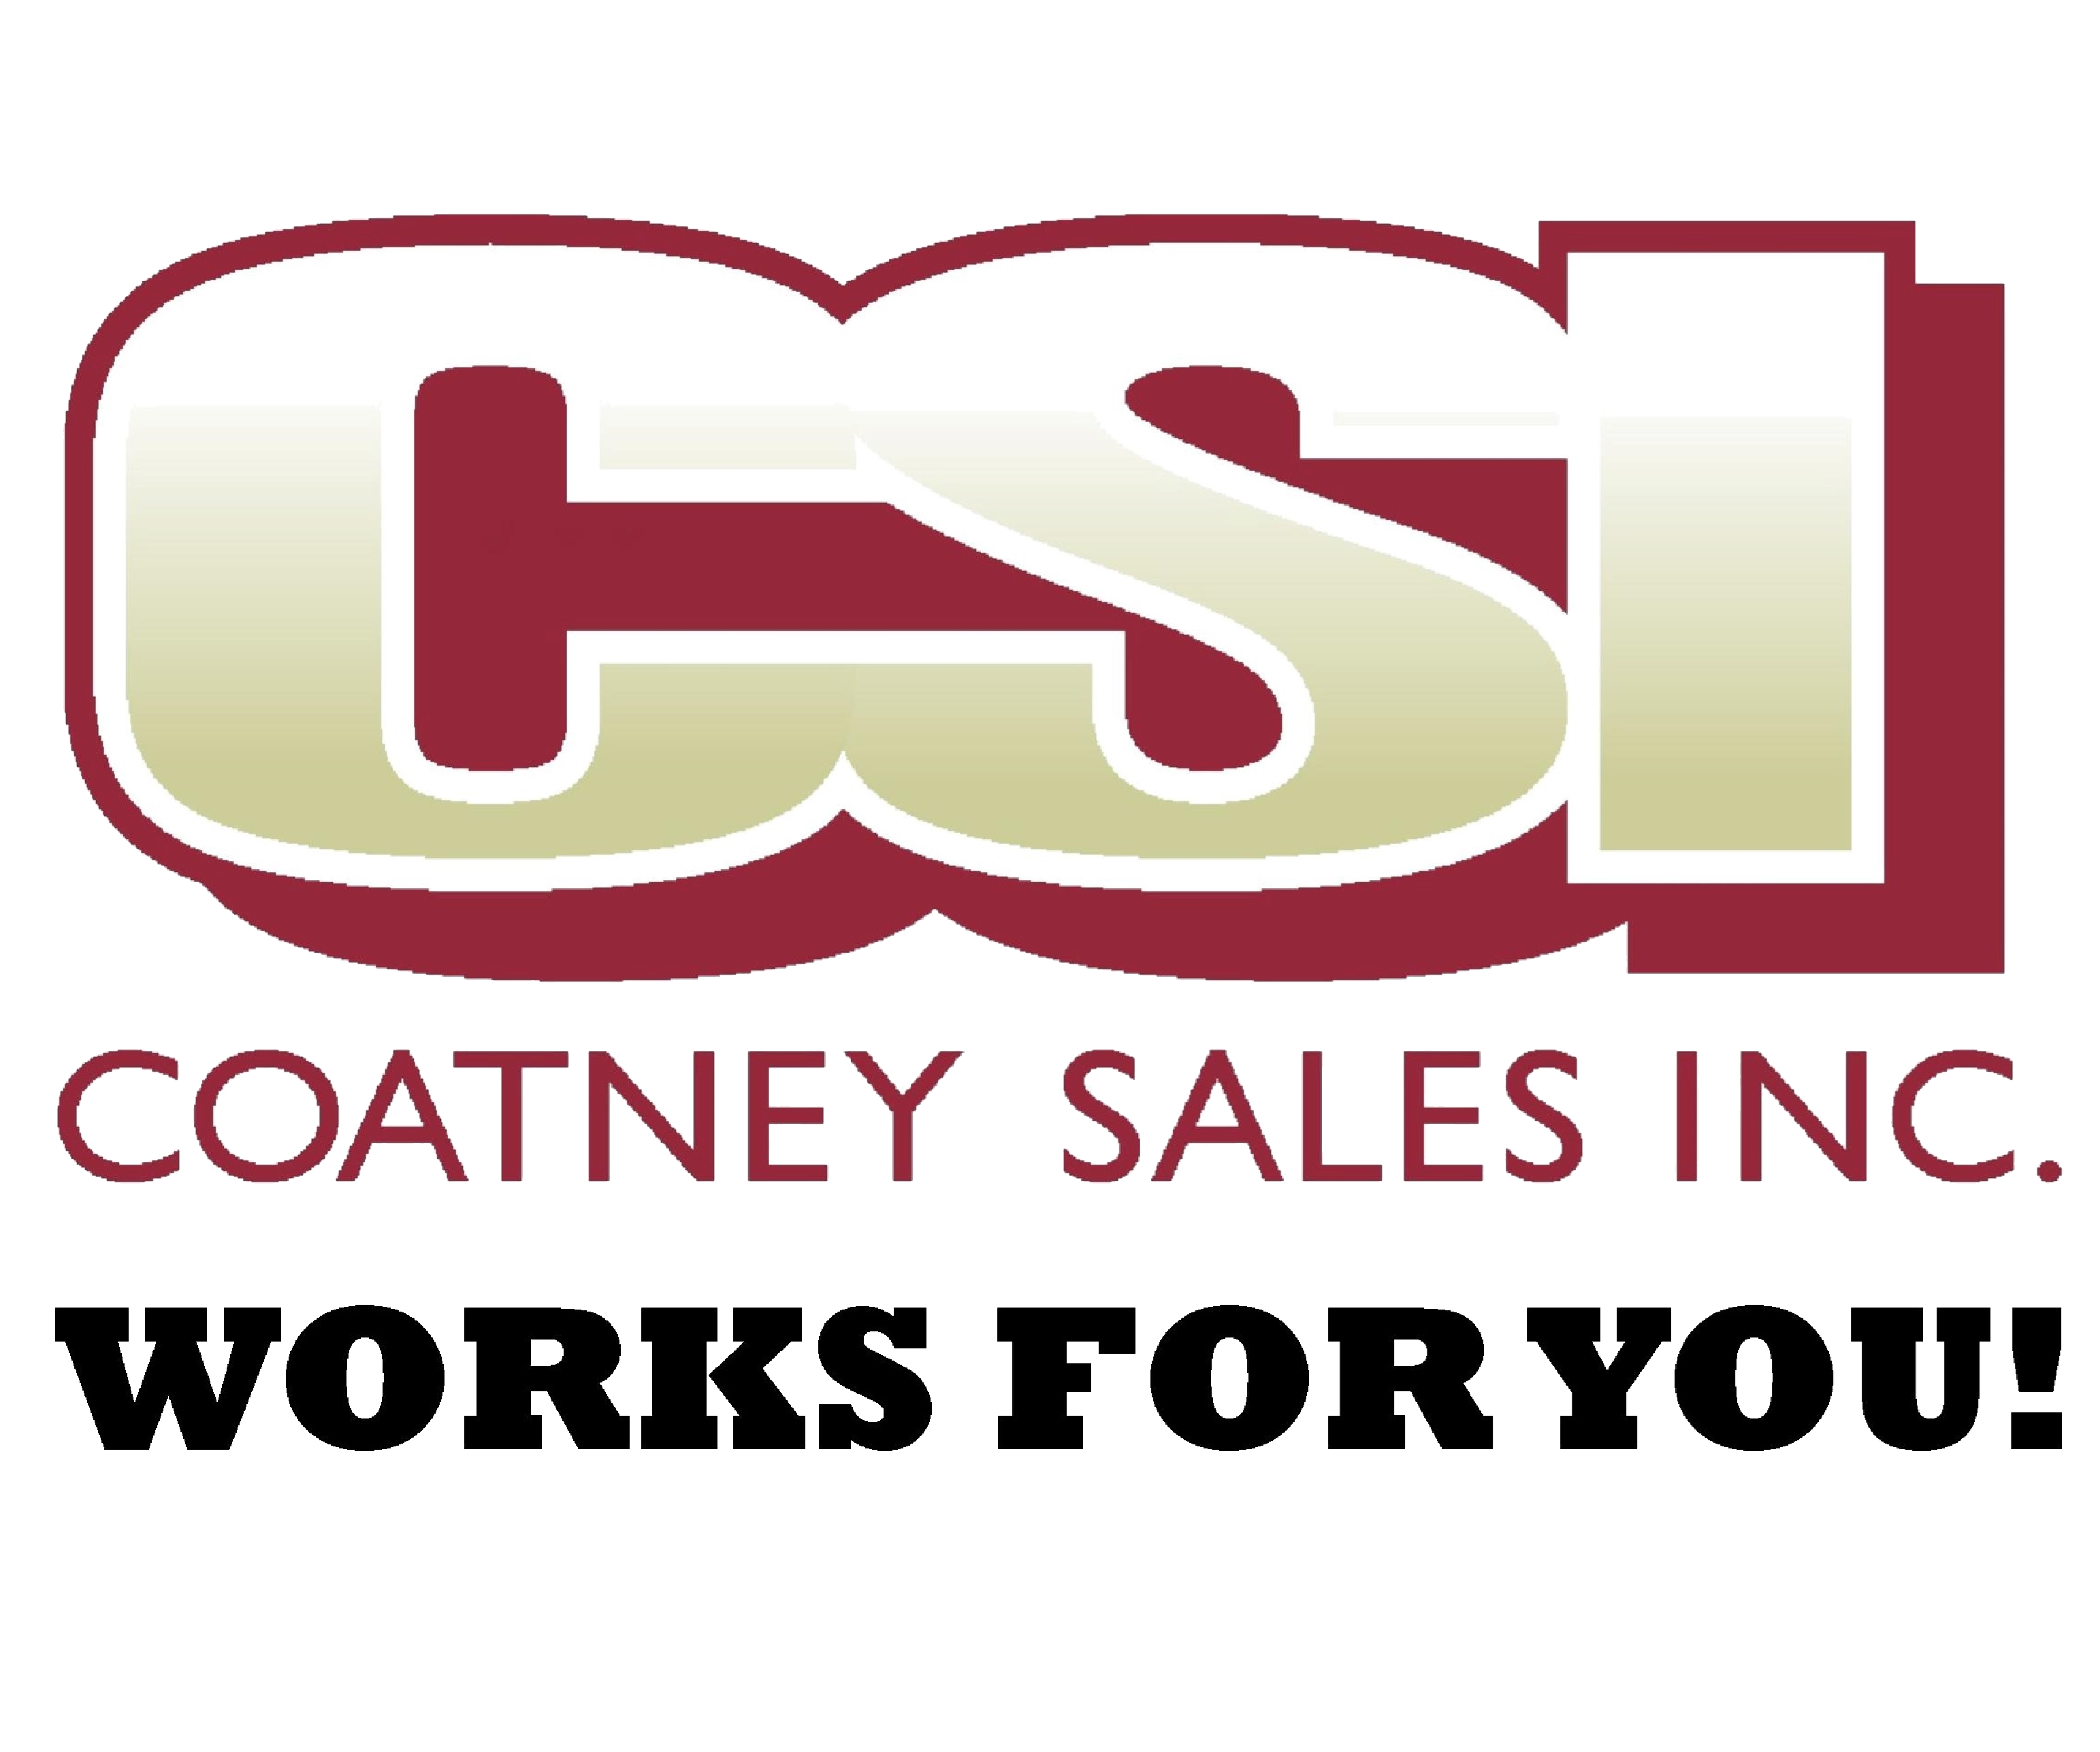 Coatney Sales Inc.